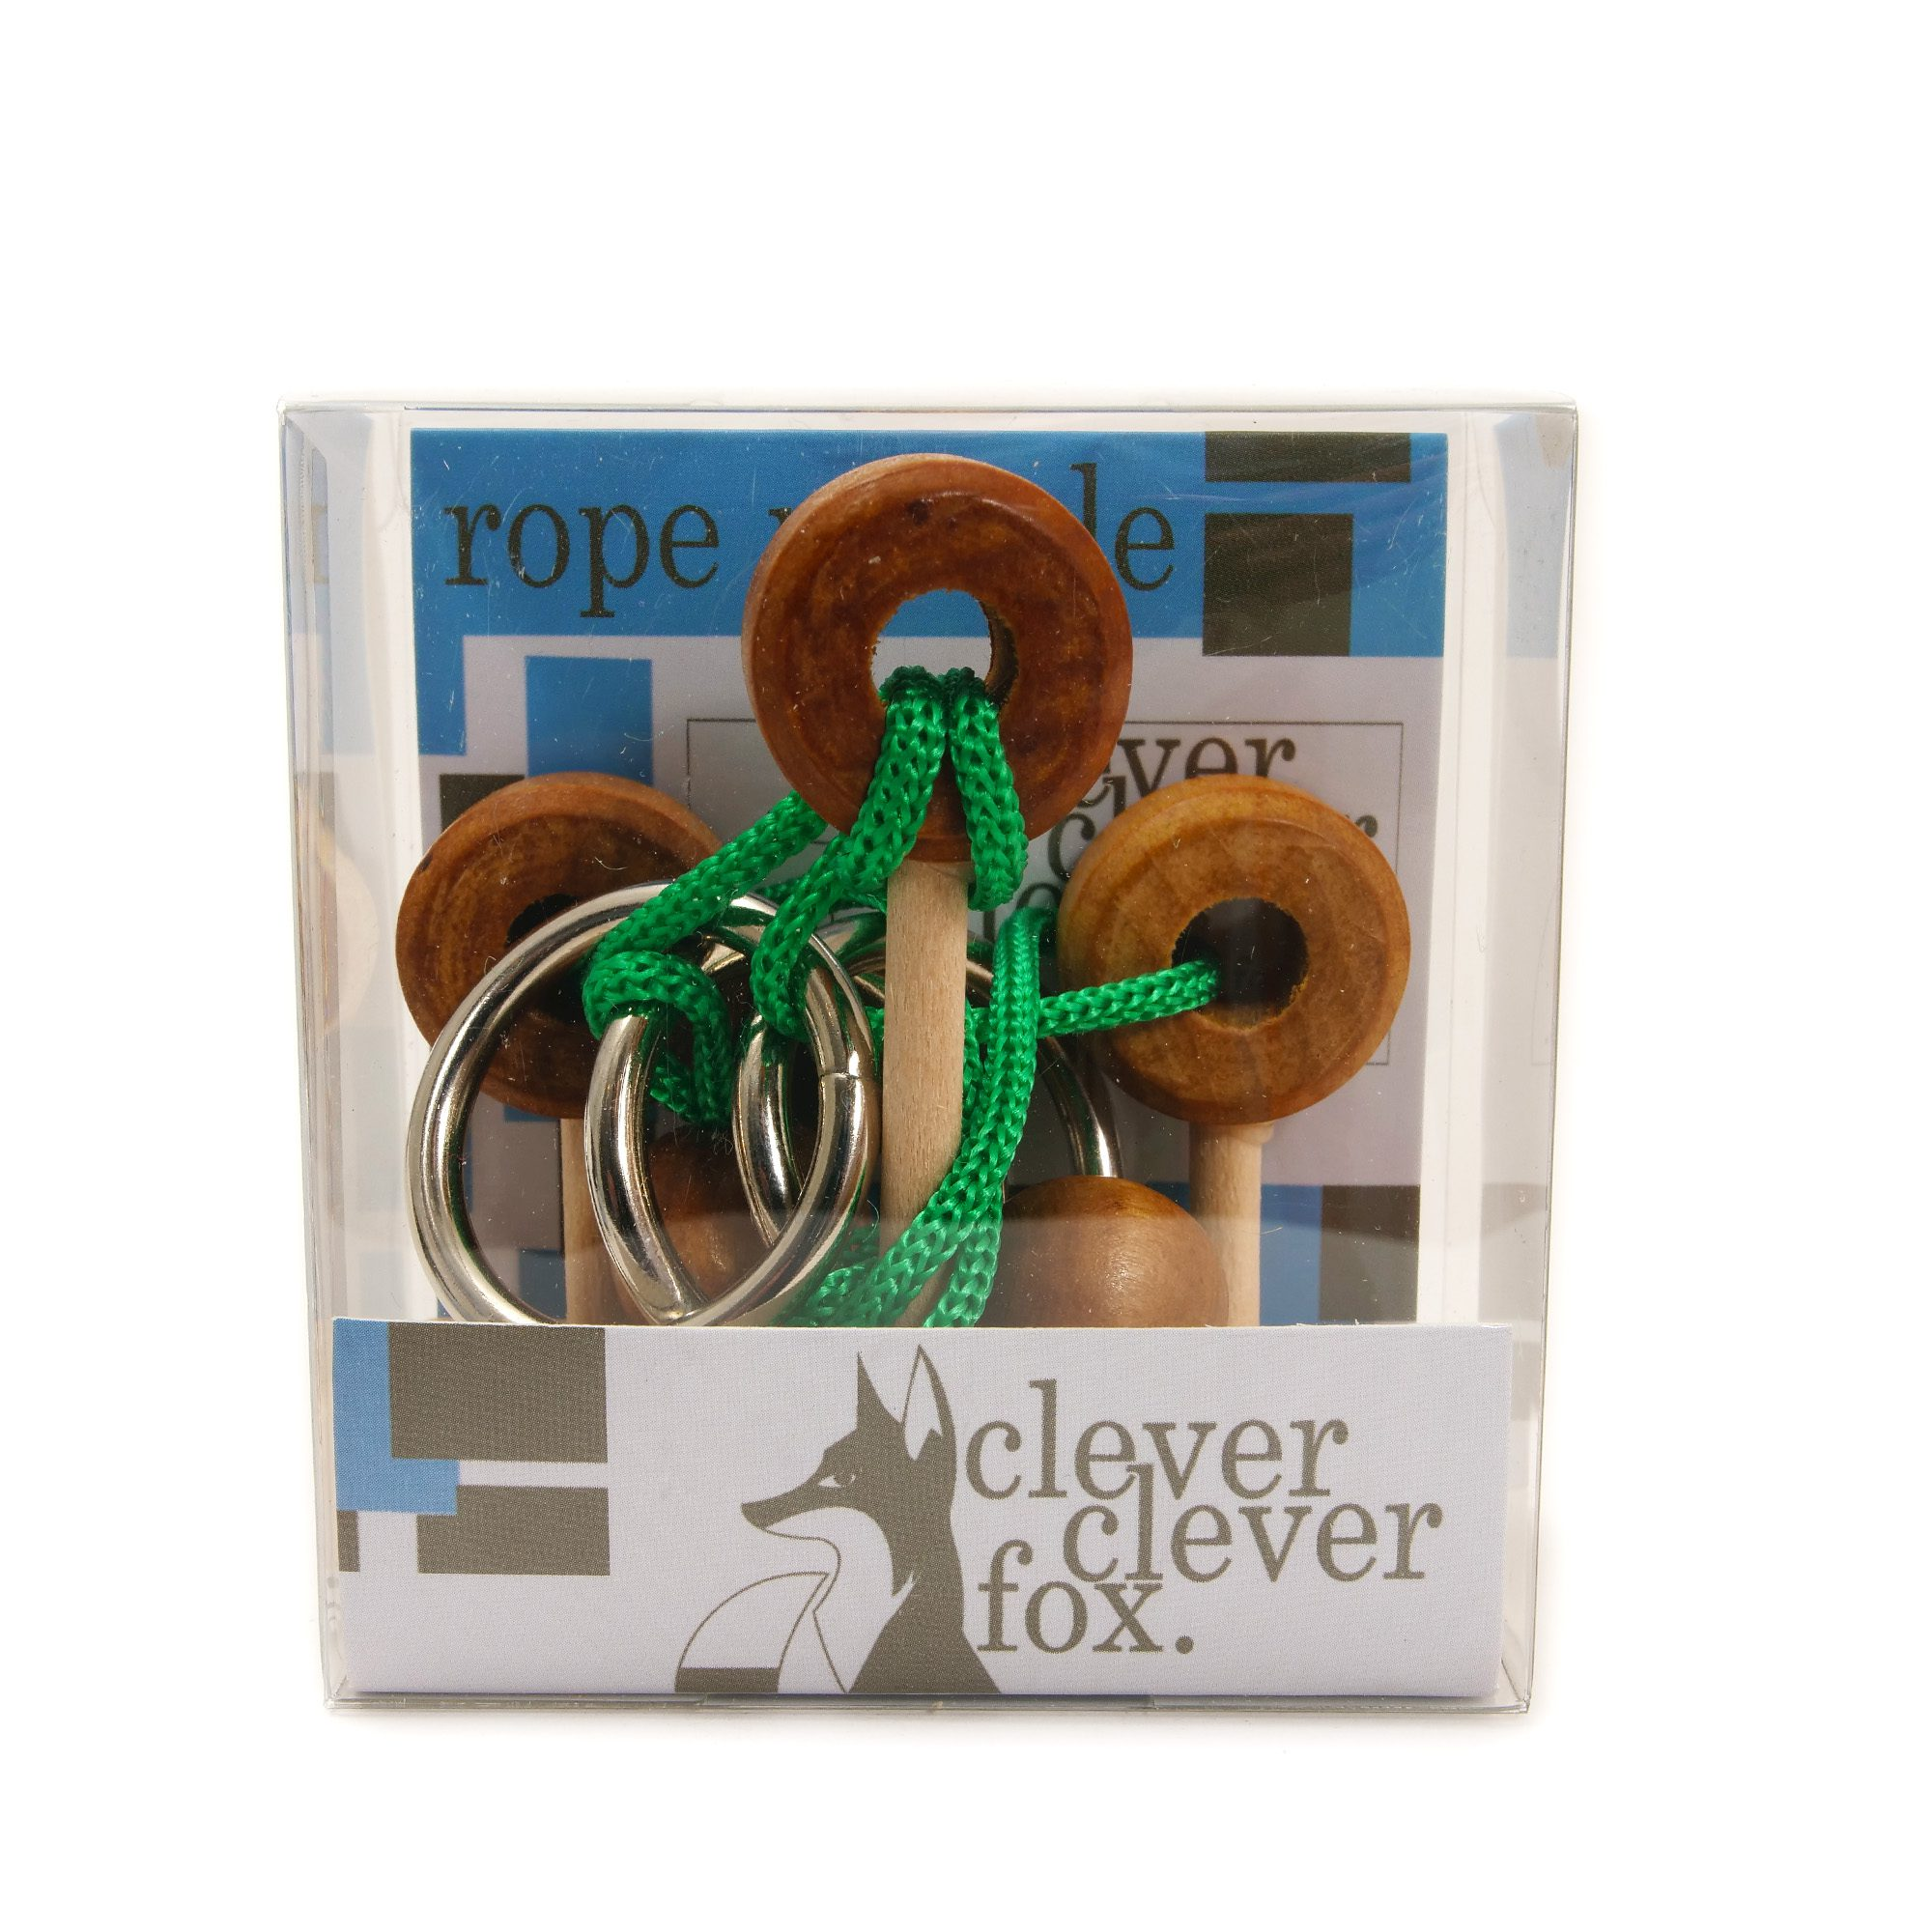 Clever Fox: Clever Fox Rope Puzzle - Green